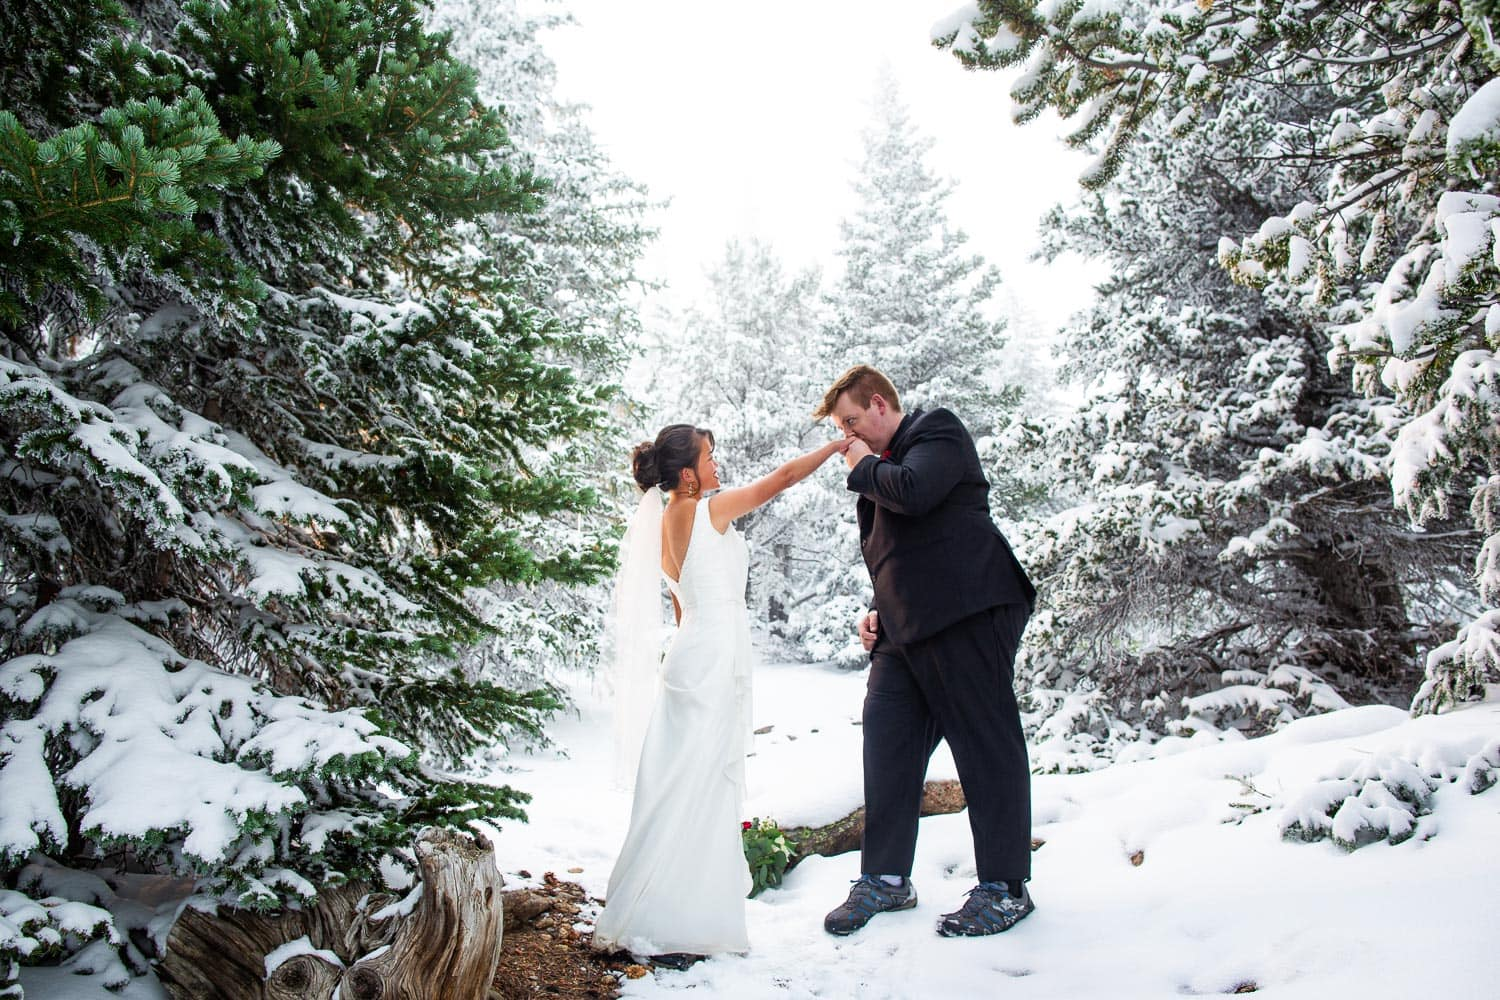 A groom kisses a bride's hand at their winter elopement surrounded by evergreen trees.